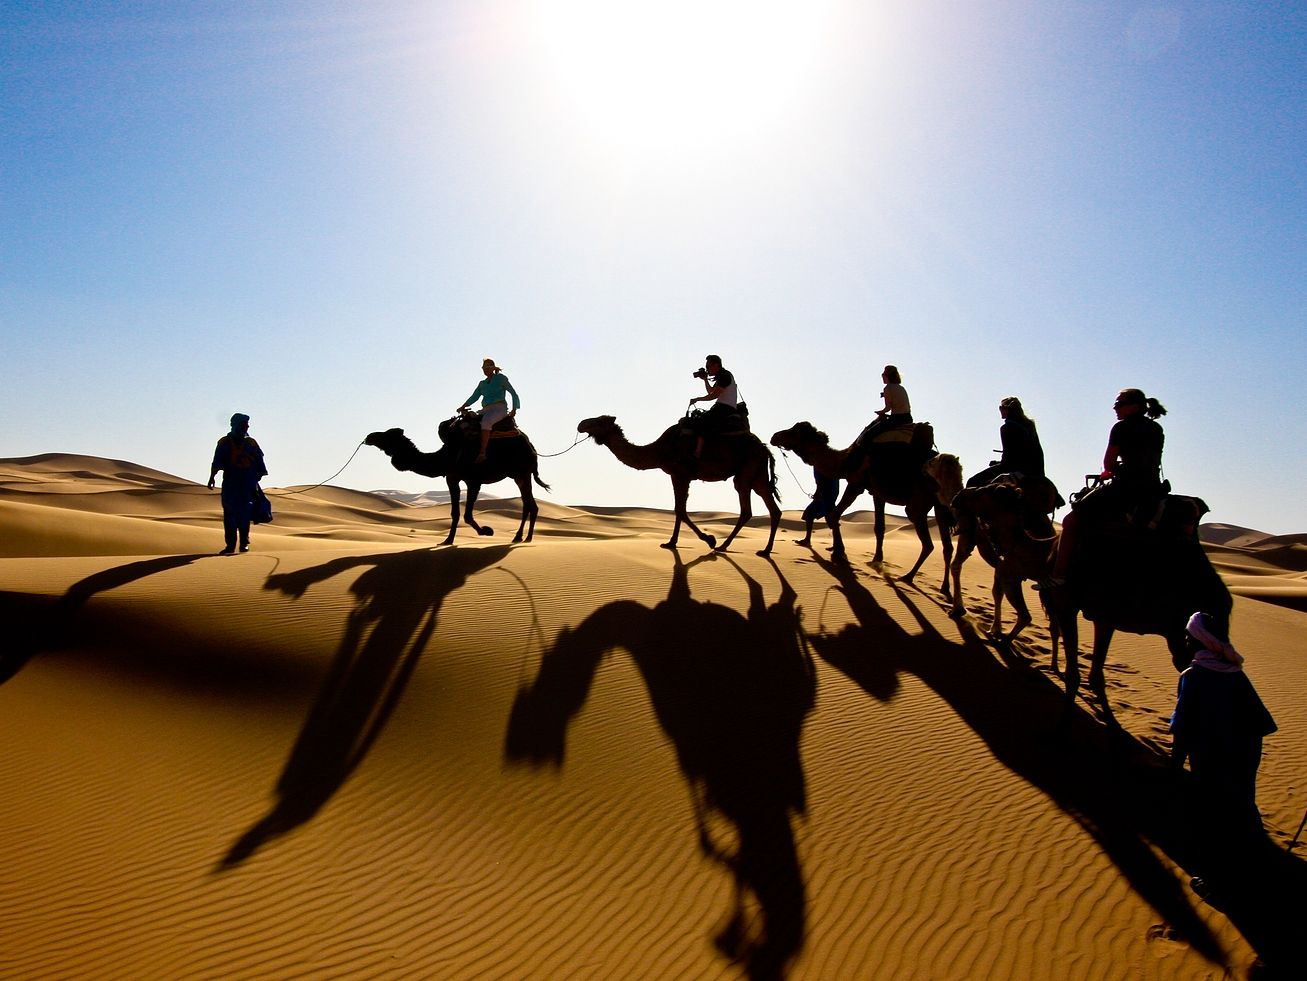 Book now & save £100: Discover the best of Morocco with other #singleparents on our 4-star Agadir holiday 3 to 10 August 2013.